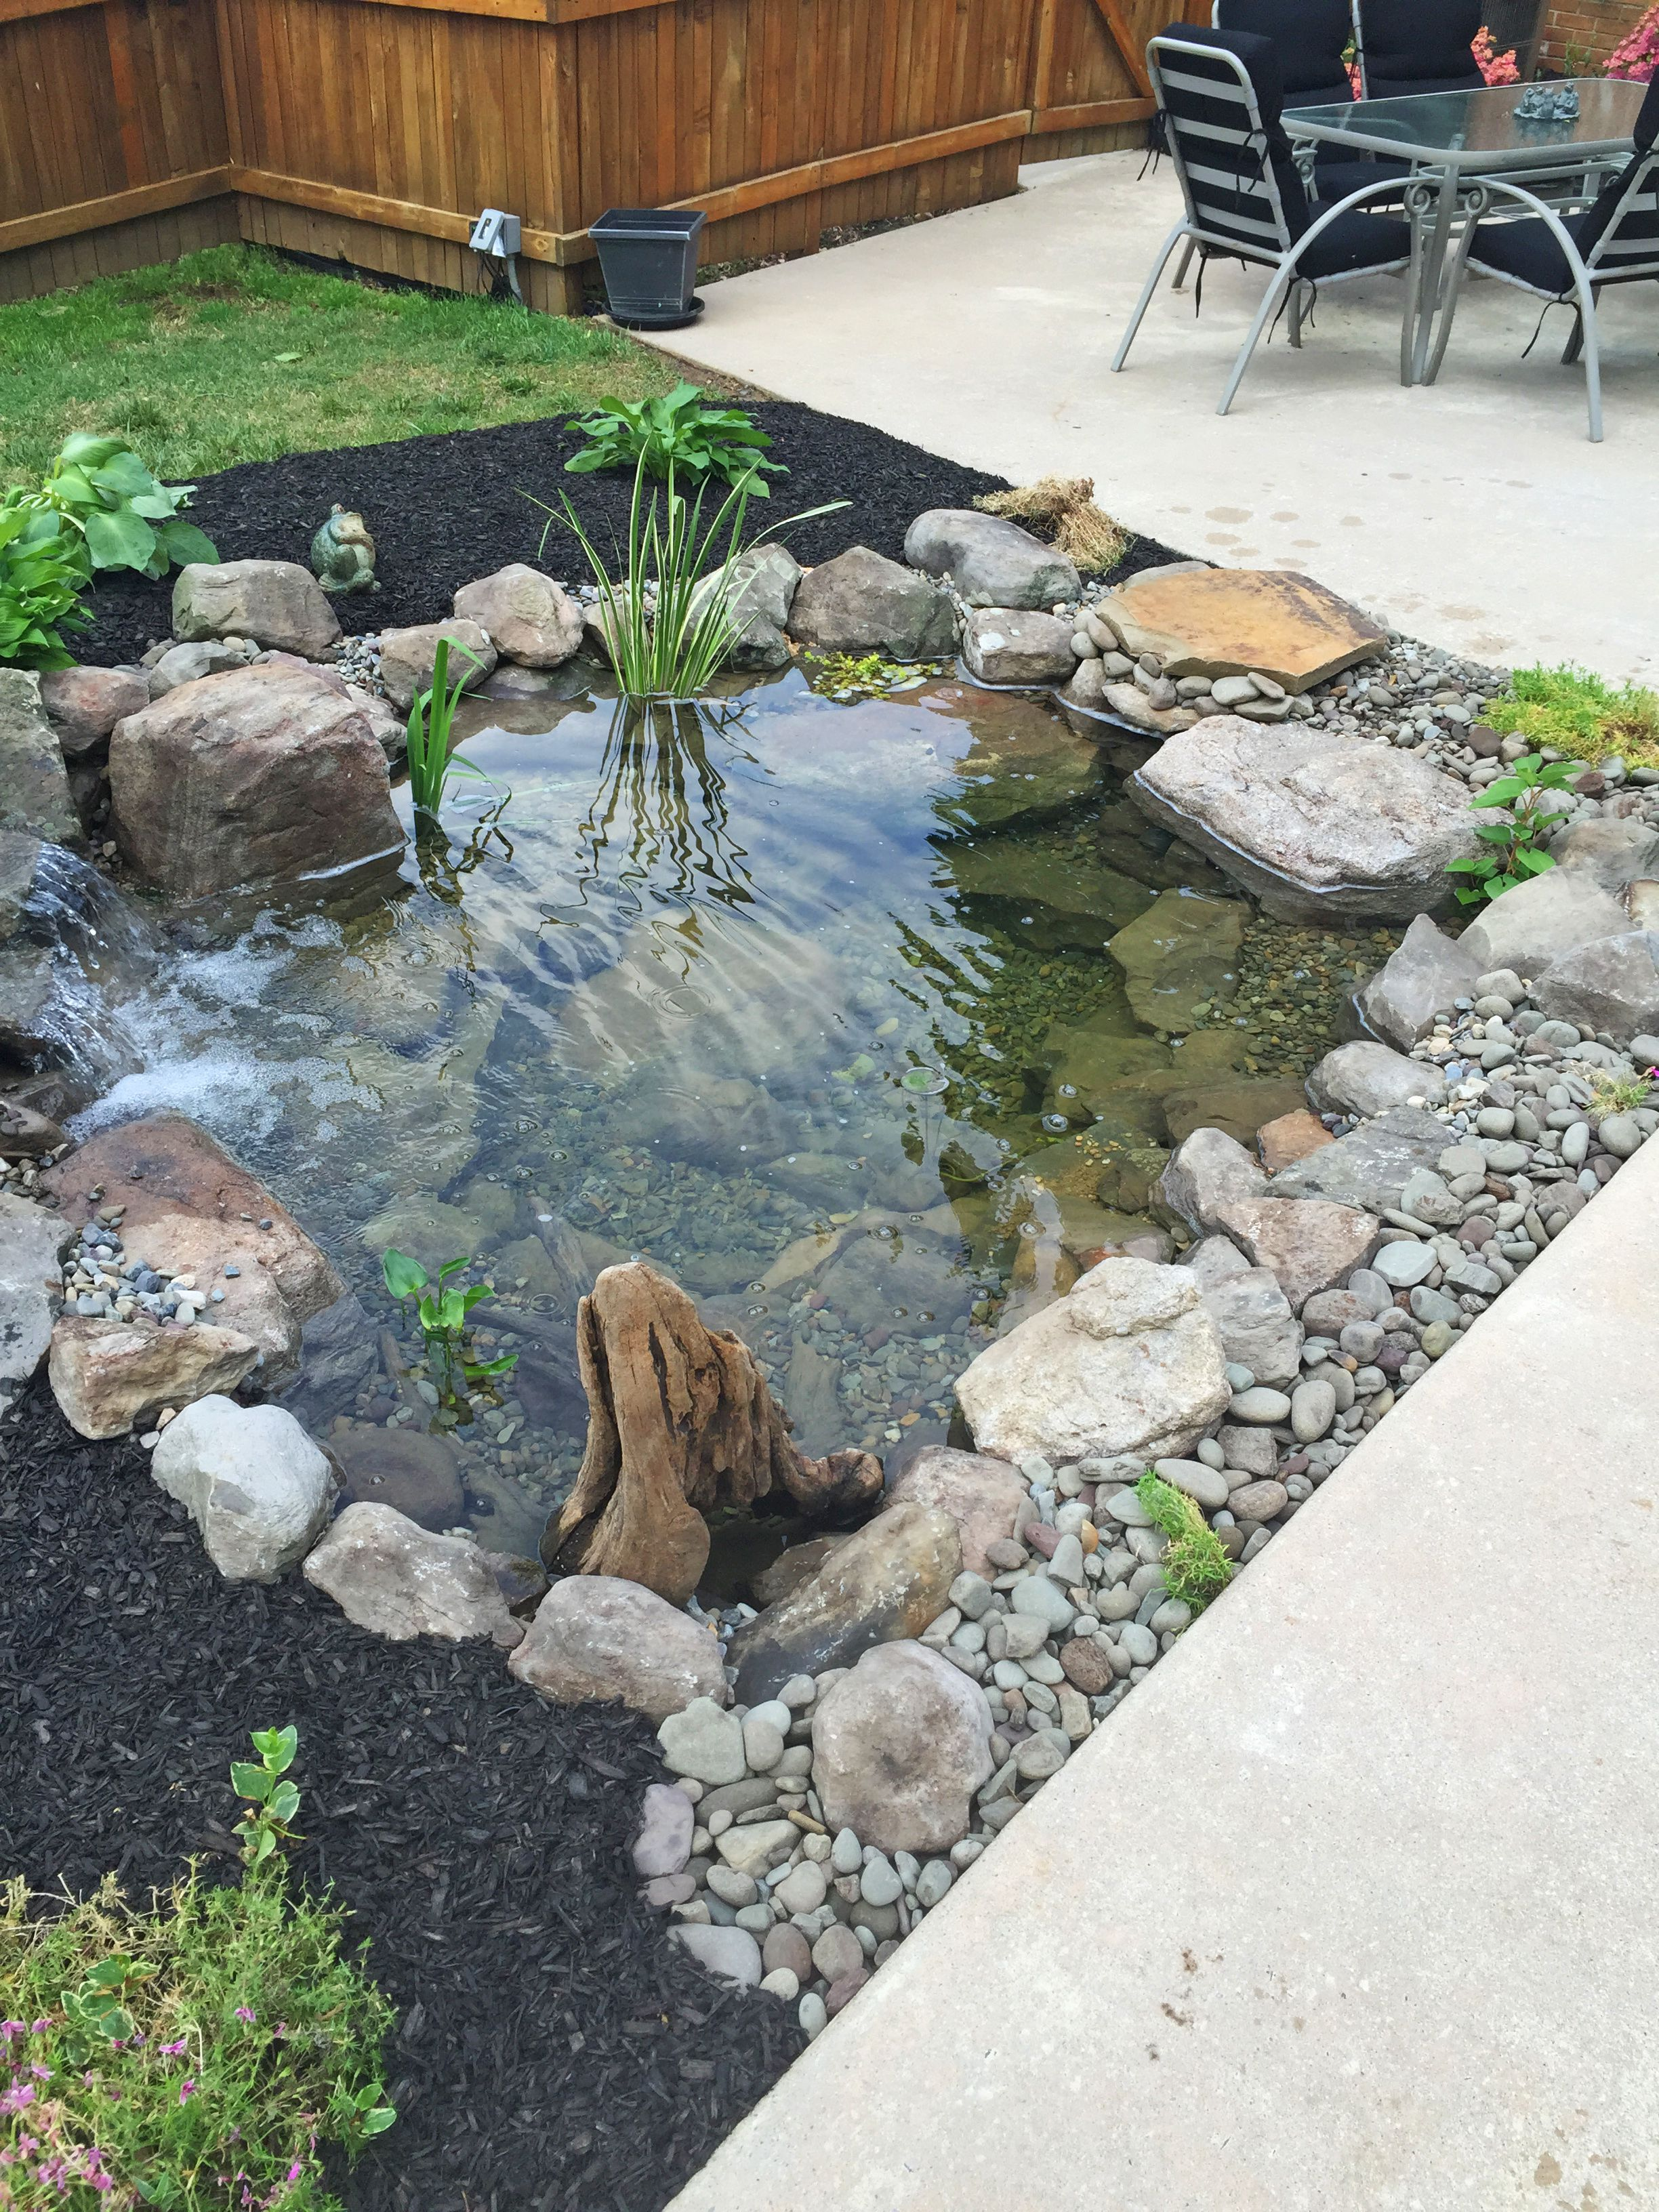 Backyard fish pond waterfall koi water garden waterscapes for Small outside fish ponds